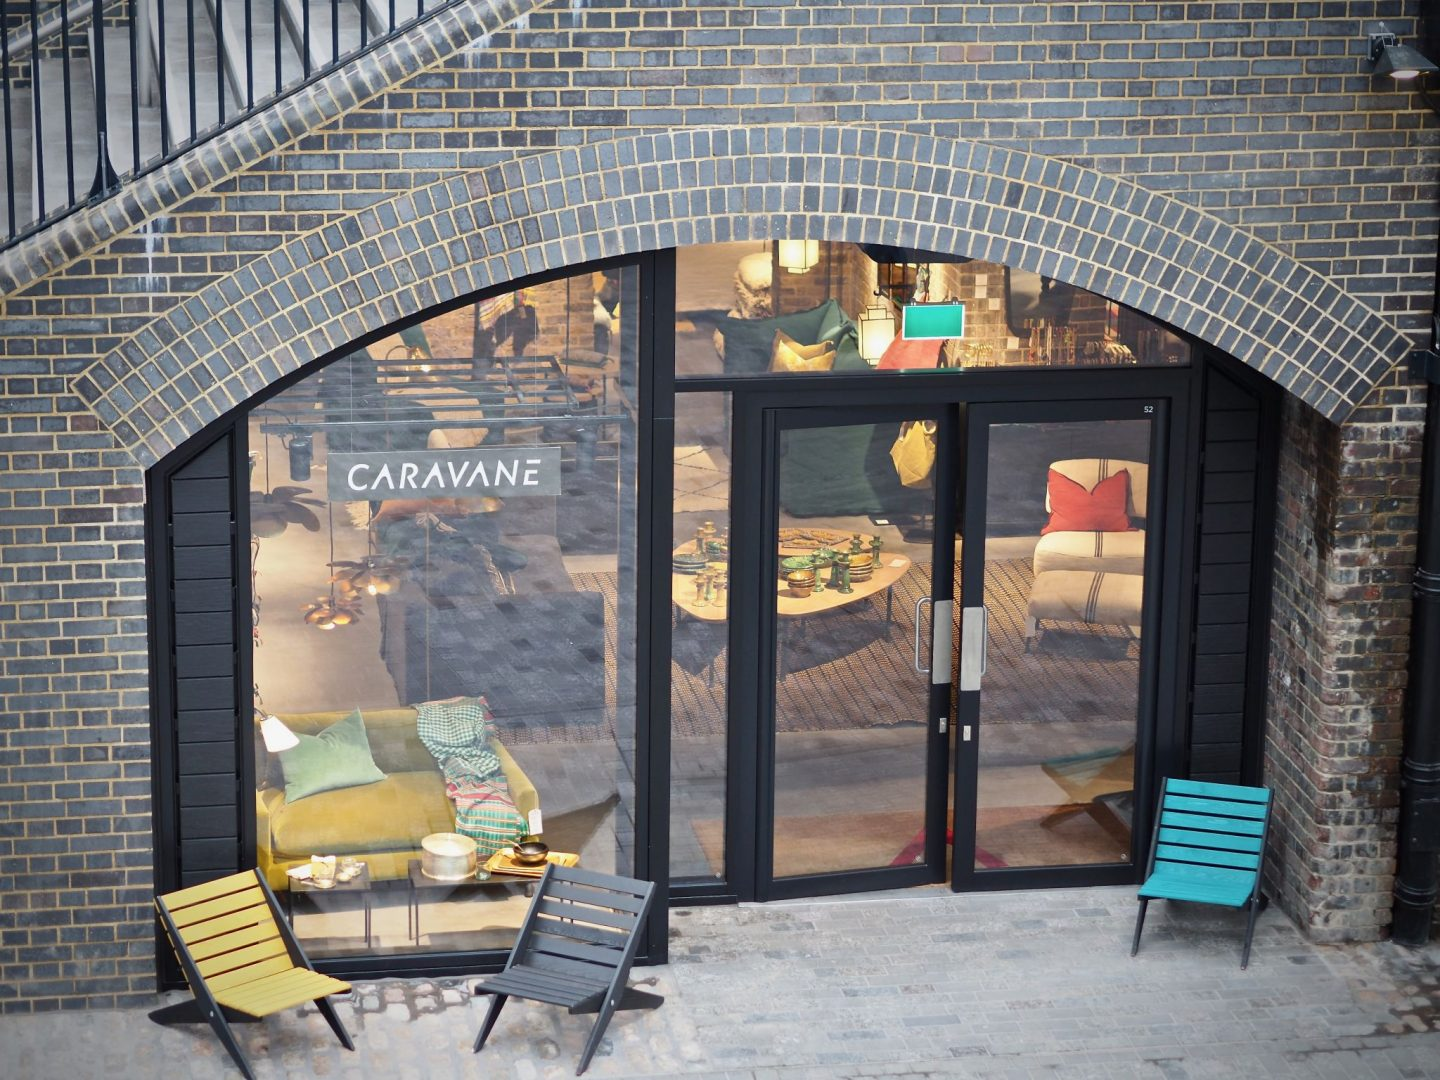 Coal Drops Yard, Caravane, Bertrand Fairerol flagship, Mary Middleton for Hello Peagreen